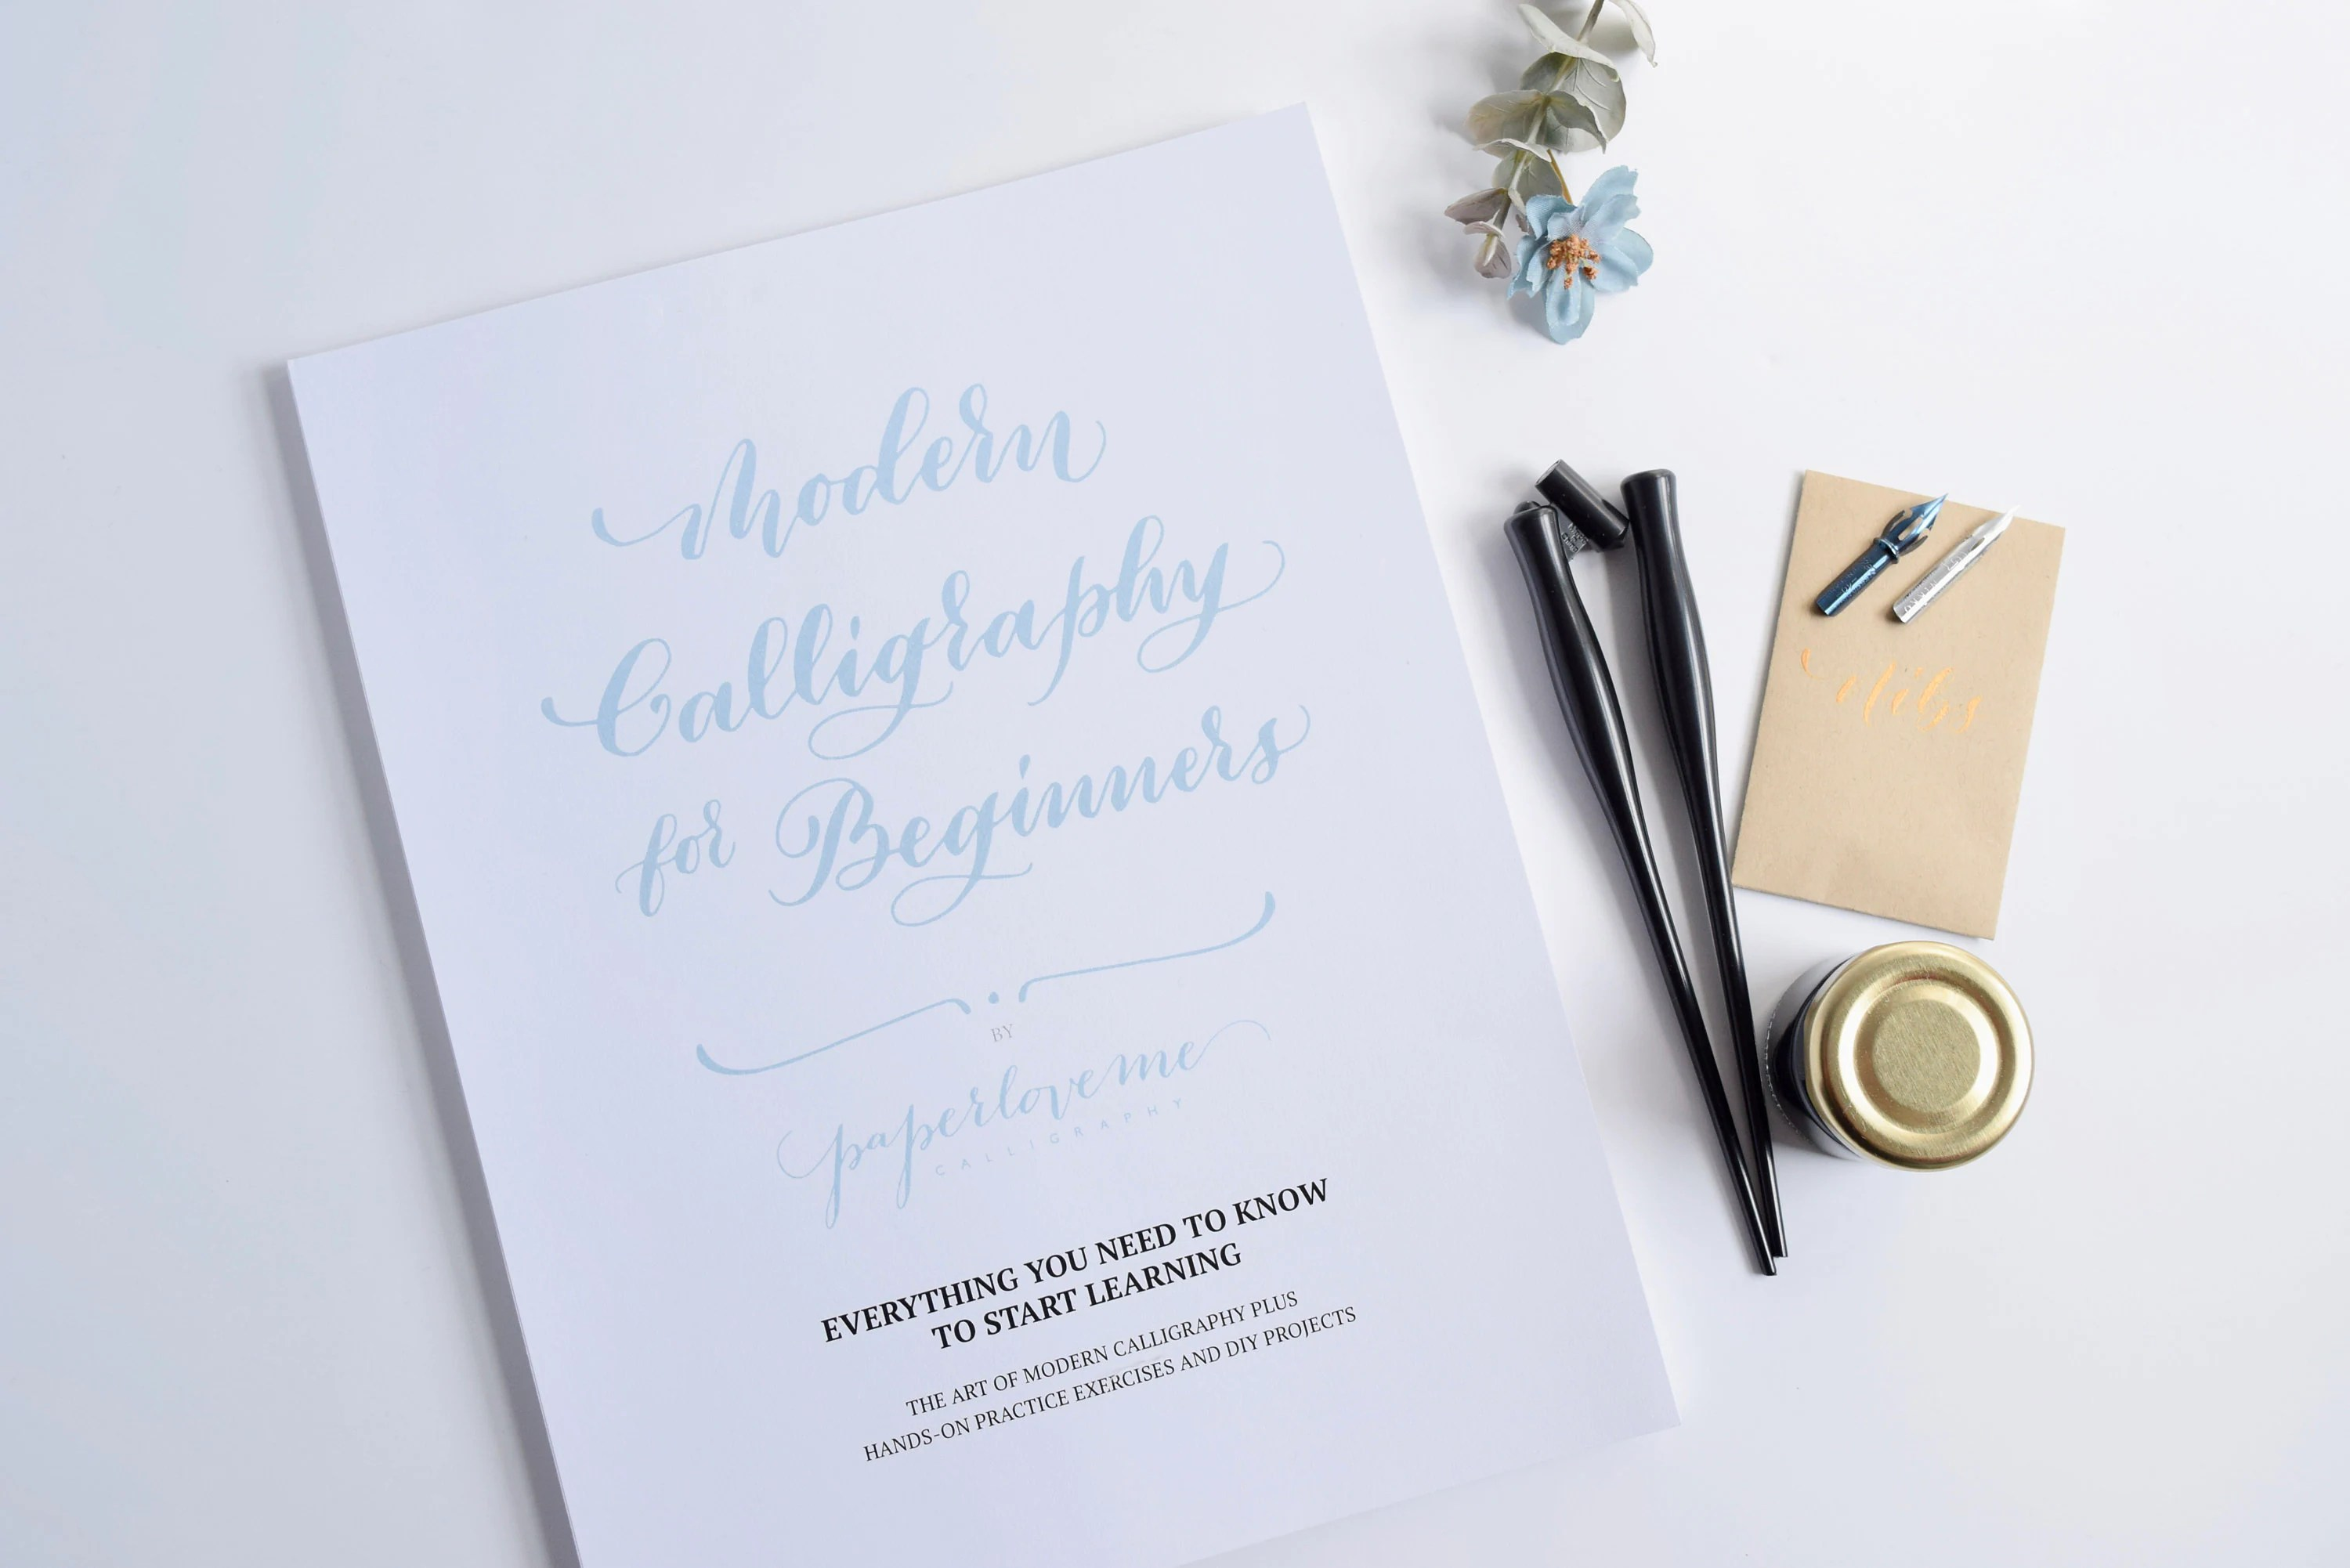 Calligraphy For Beginners Online Modern Calligraphy Set Learn Modern Calligraphy Kit Calligraphy Gift Set Beginner Calligraphy Set